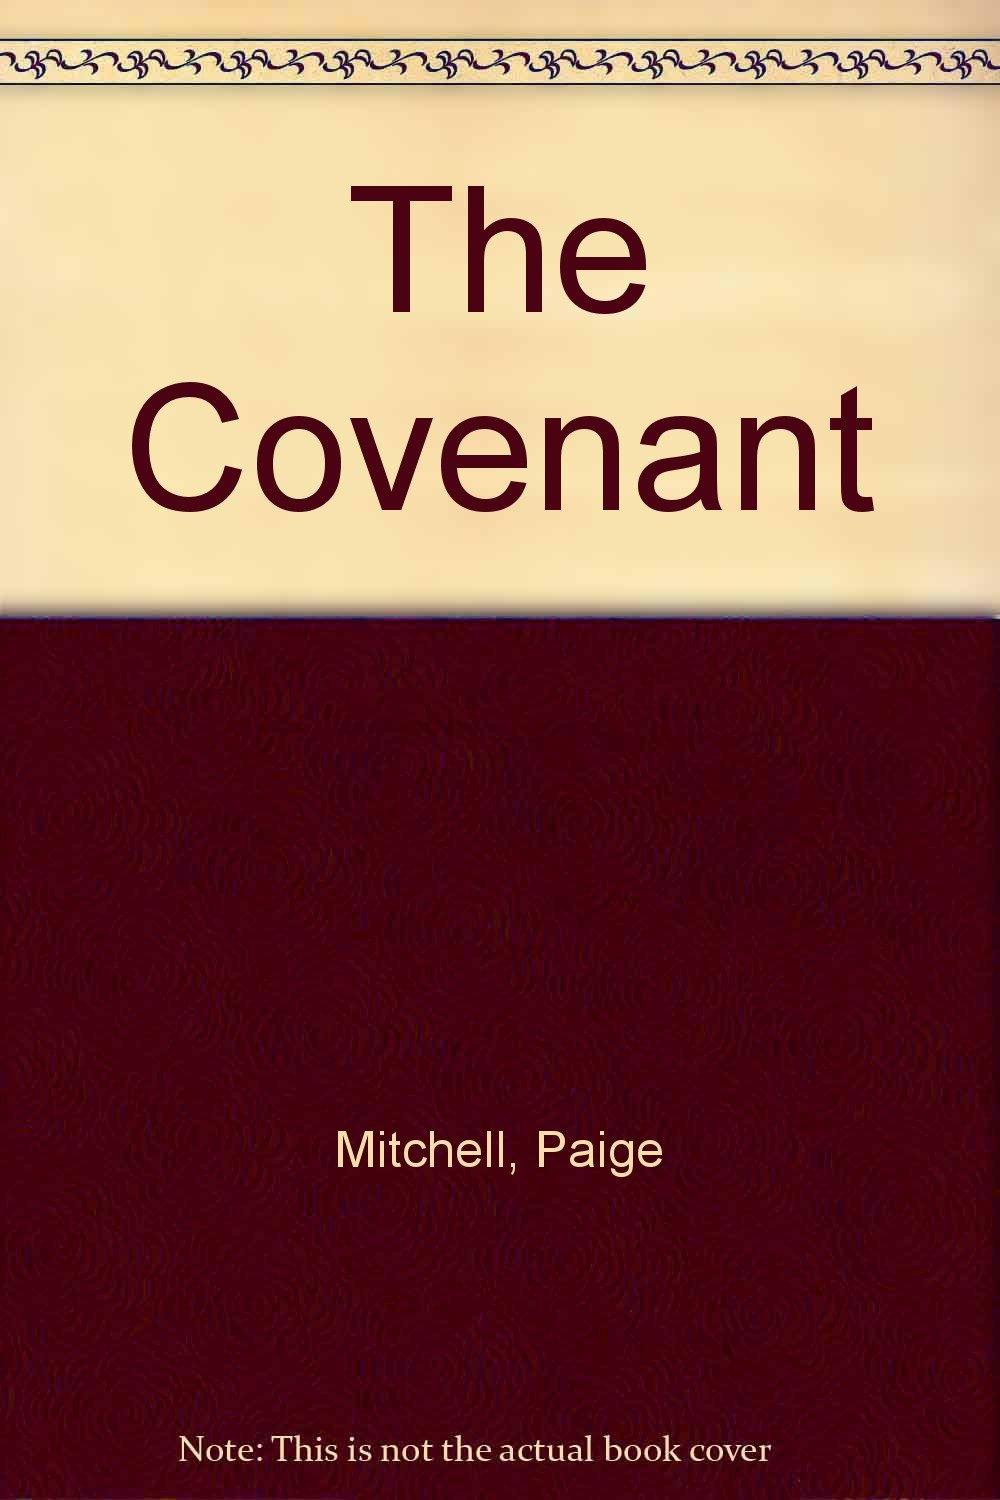 The Covenant Mitchell, Paige